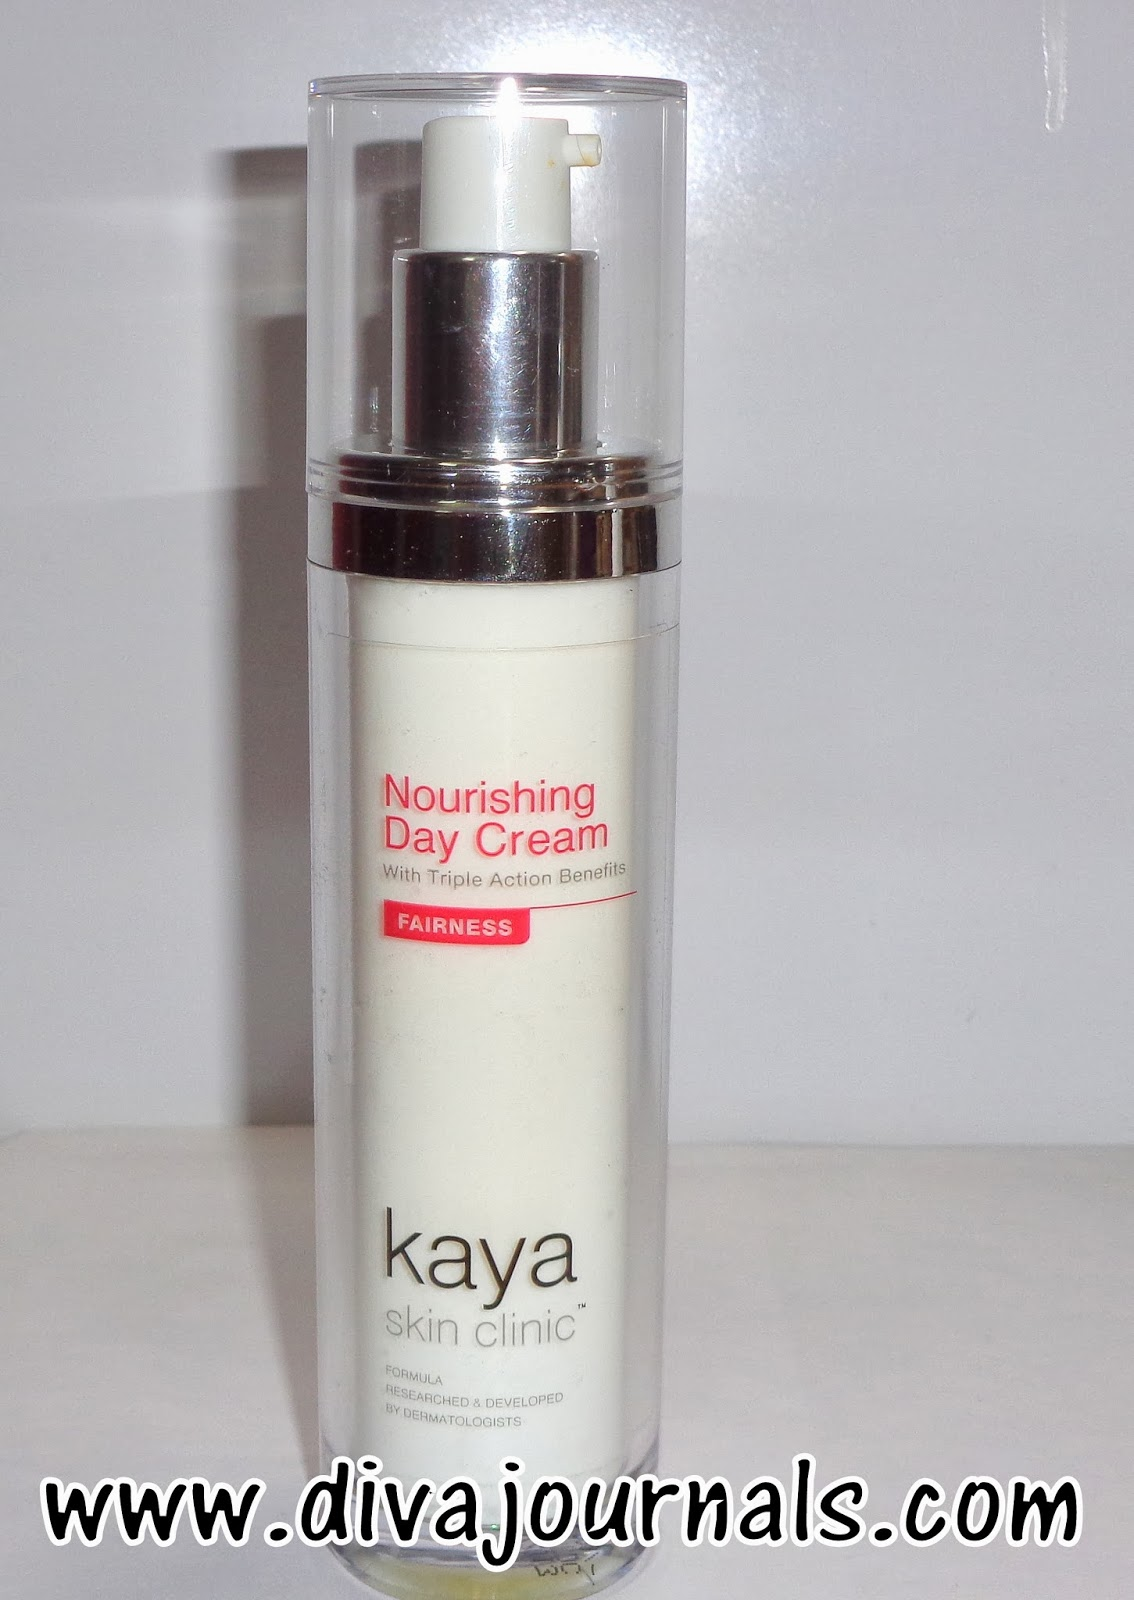 Kaya Nourishing Day&Night Cream (Fairness) Reviews